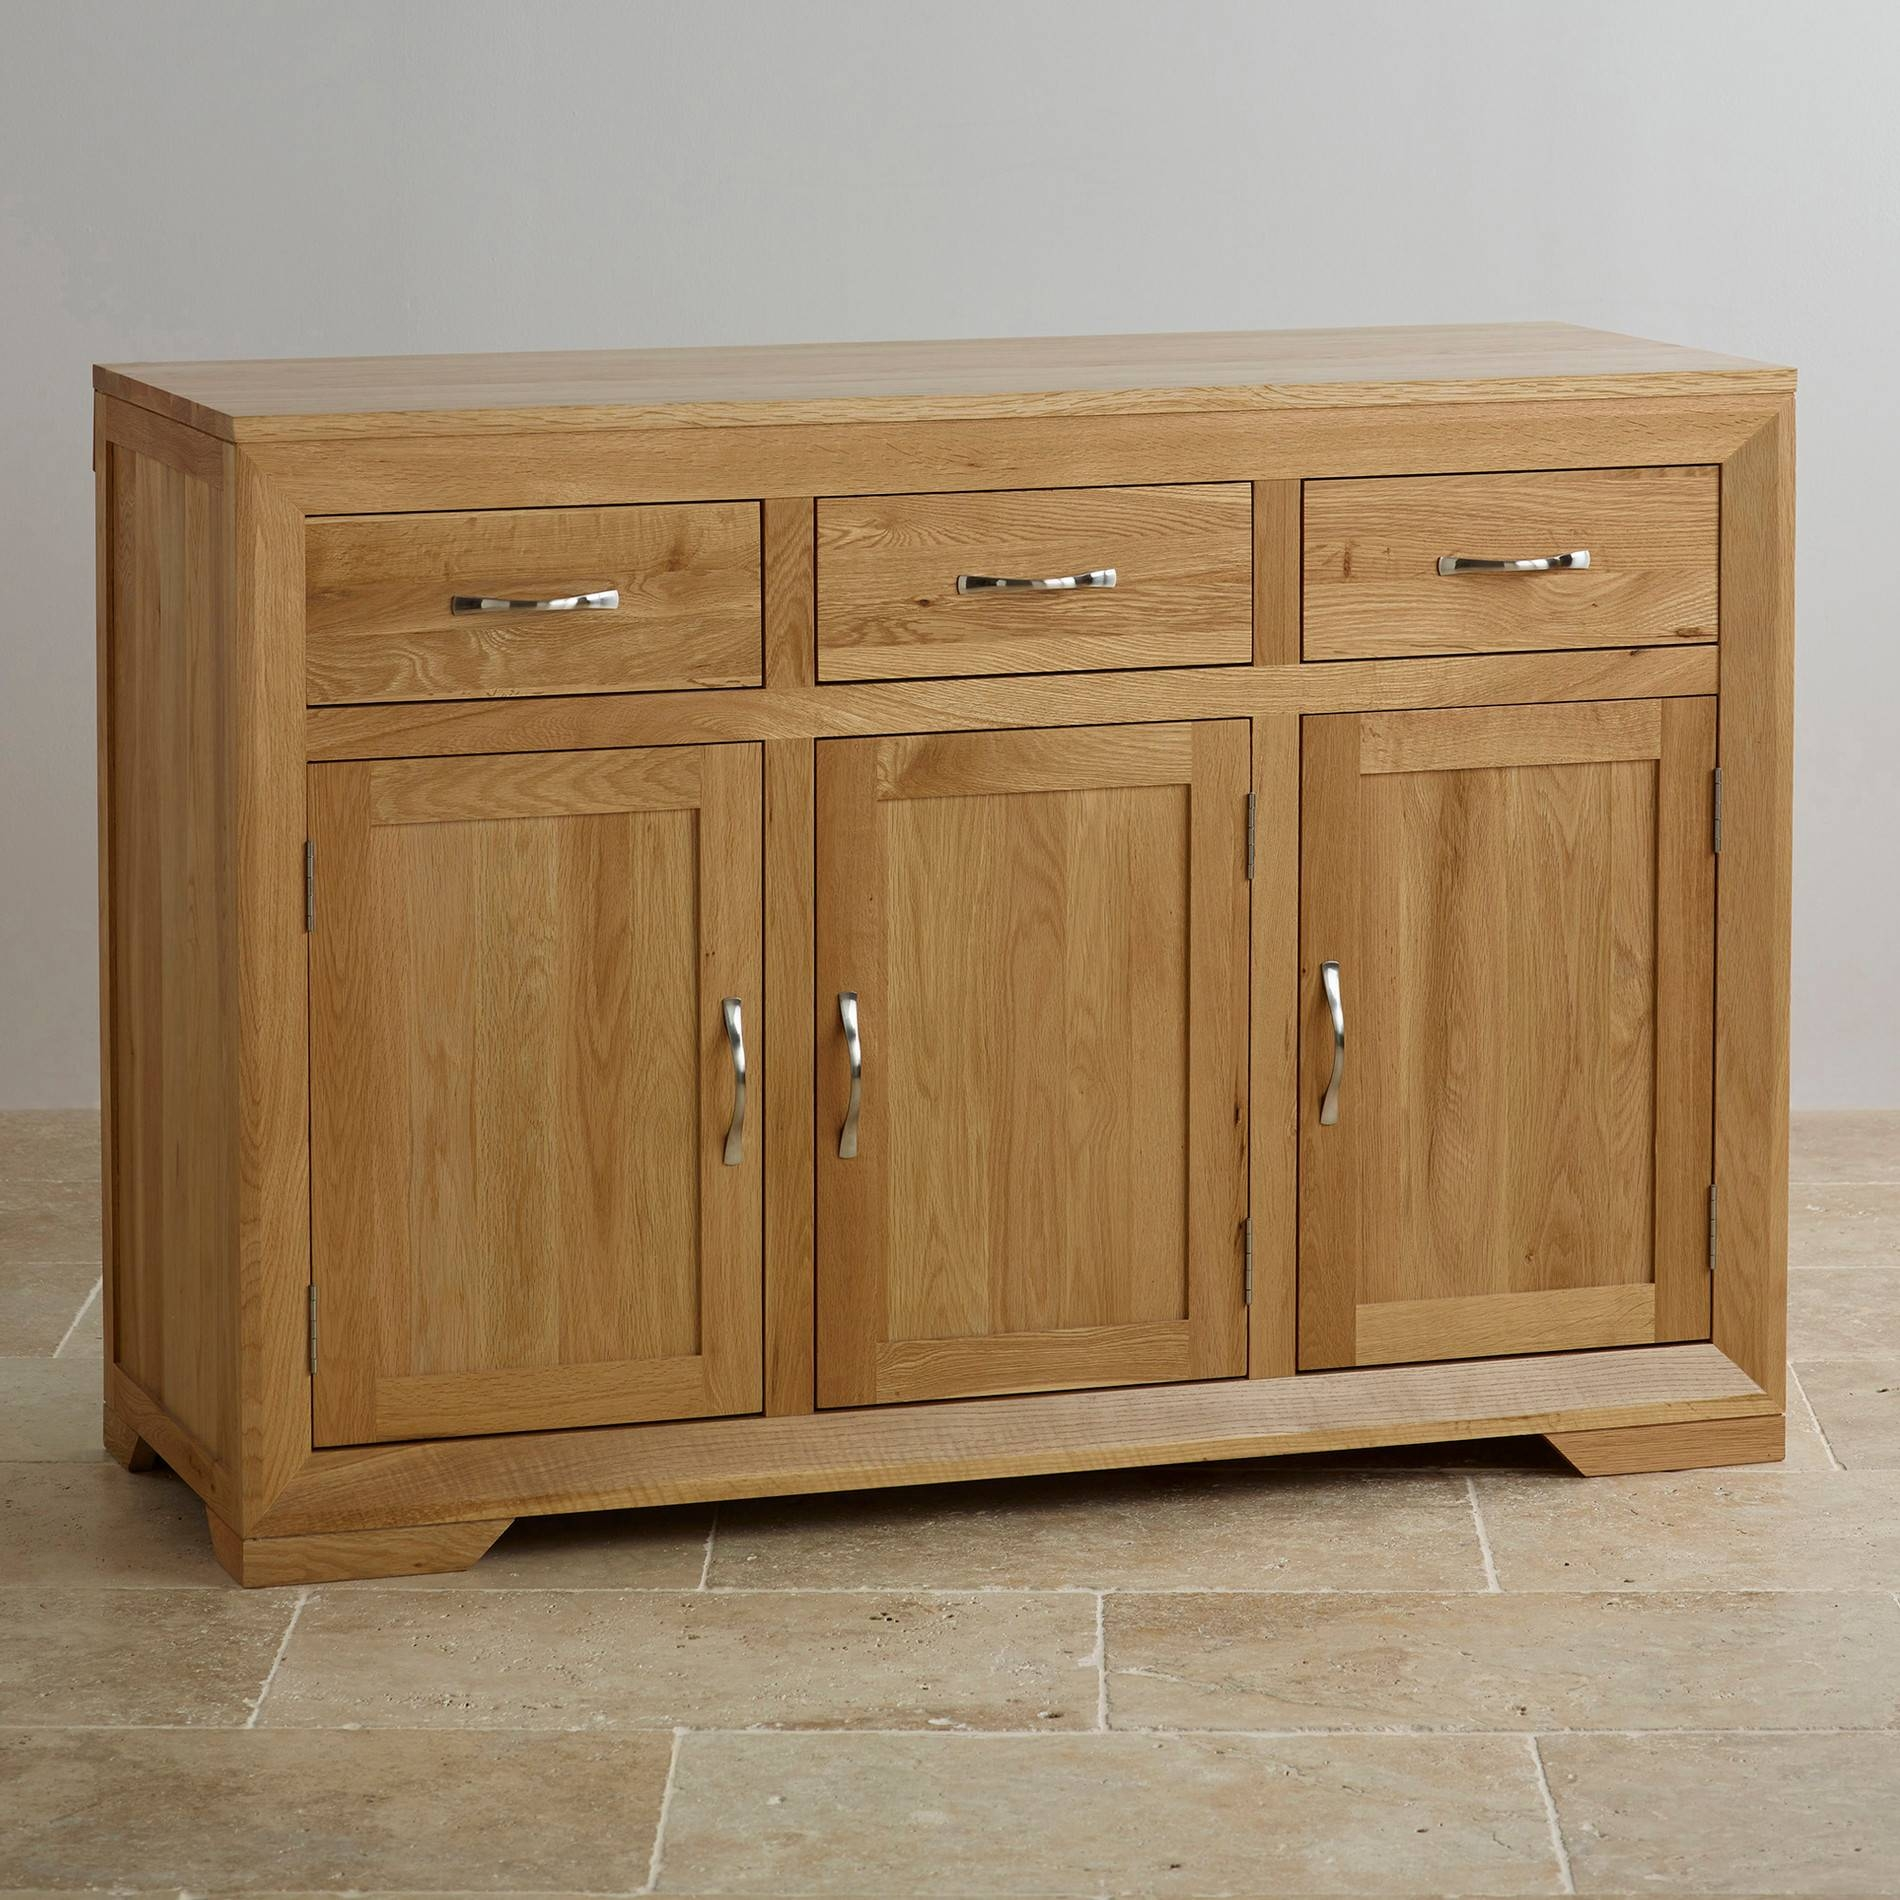 Sideboards | 100% Solid Hardwood | Oak Furniture Land intended for Large Oak Wardrobes (Image 10 of 15)